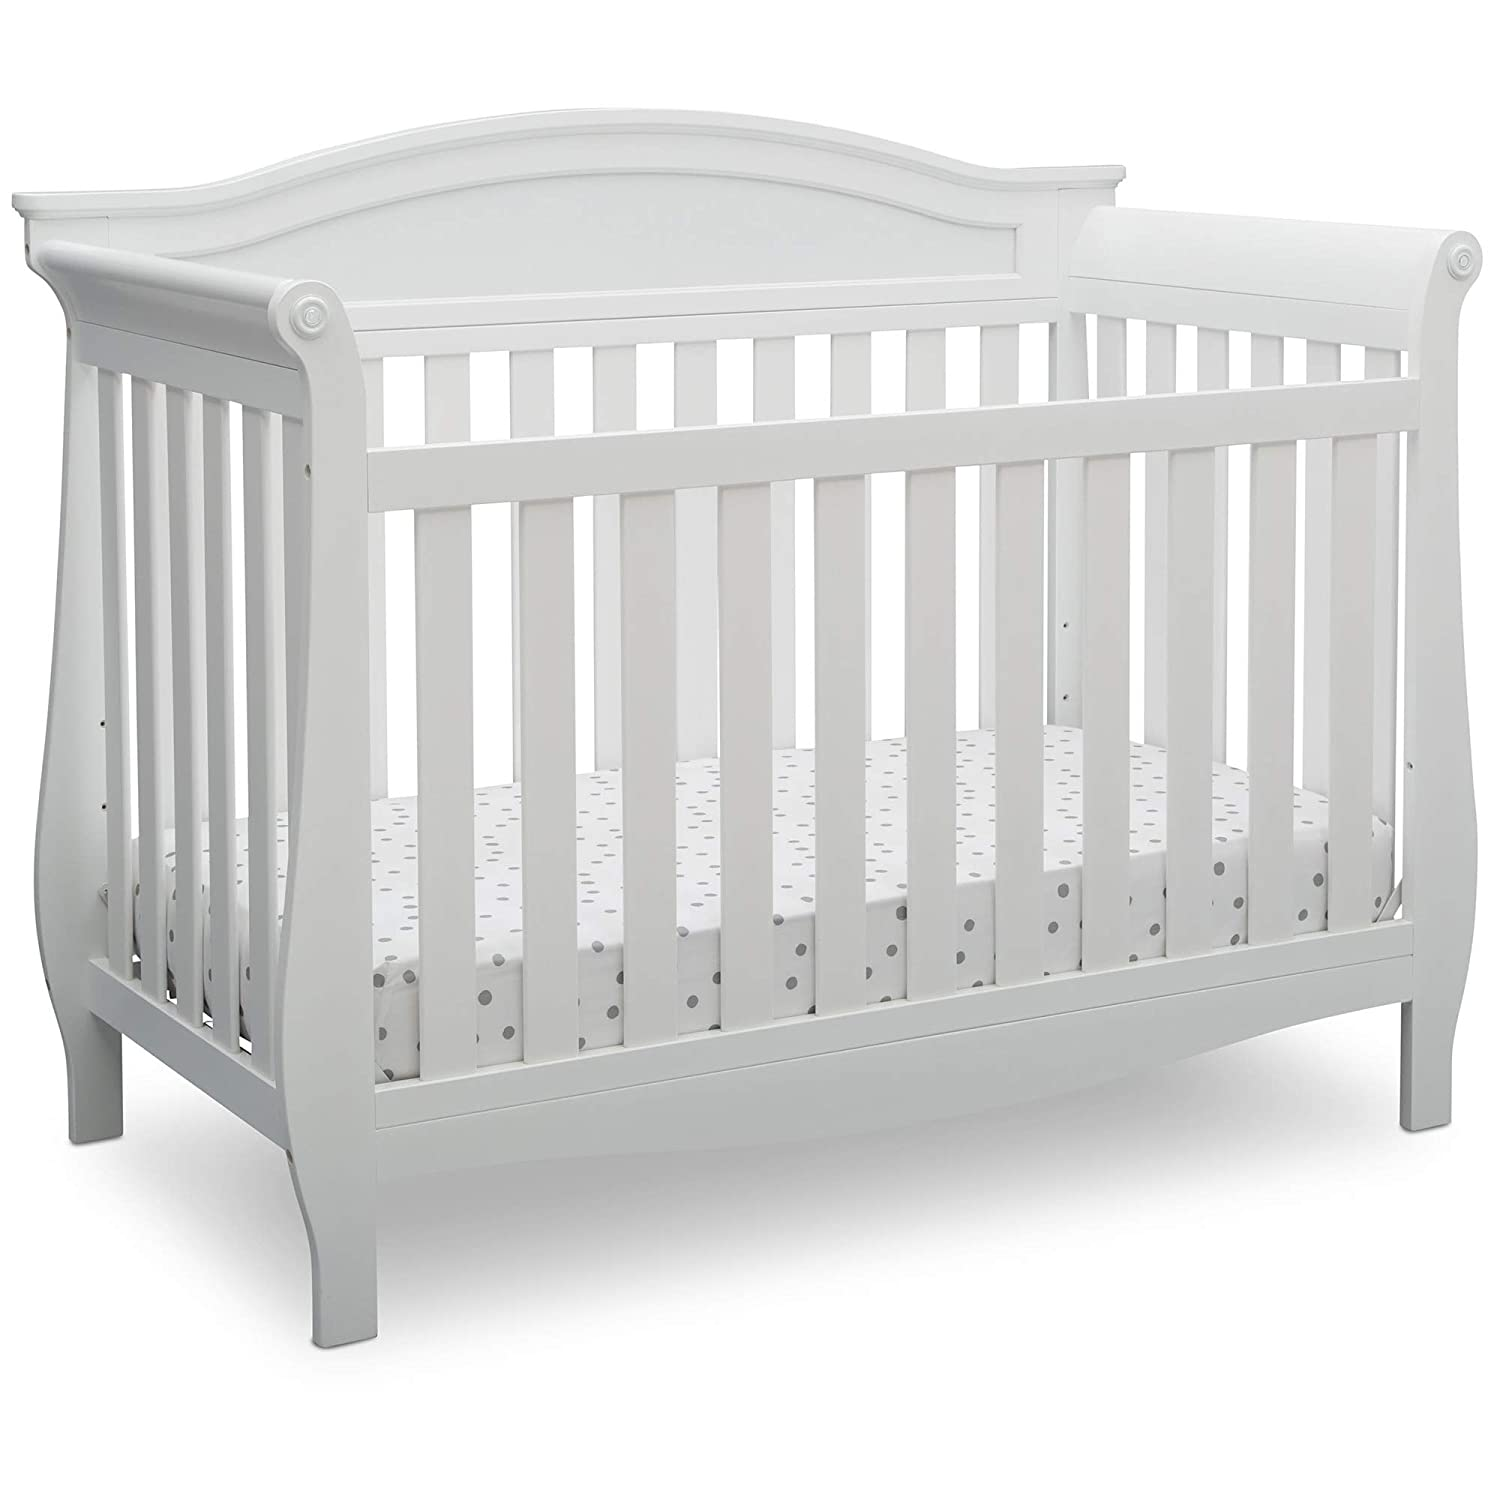 Delta Children Lancaster 4-in-1 Convertible Baby Crib, Grey Delta Enterprise Corp - PLA 552150-026